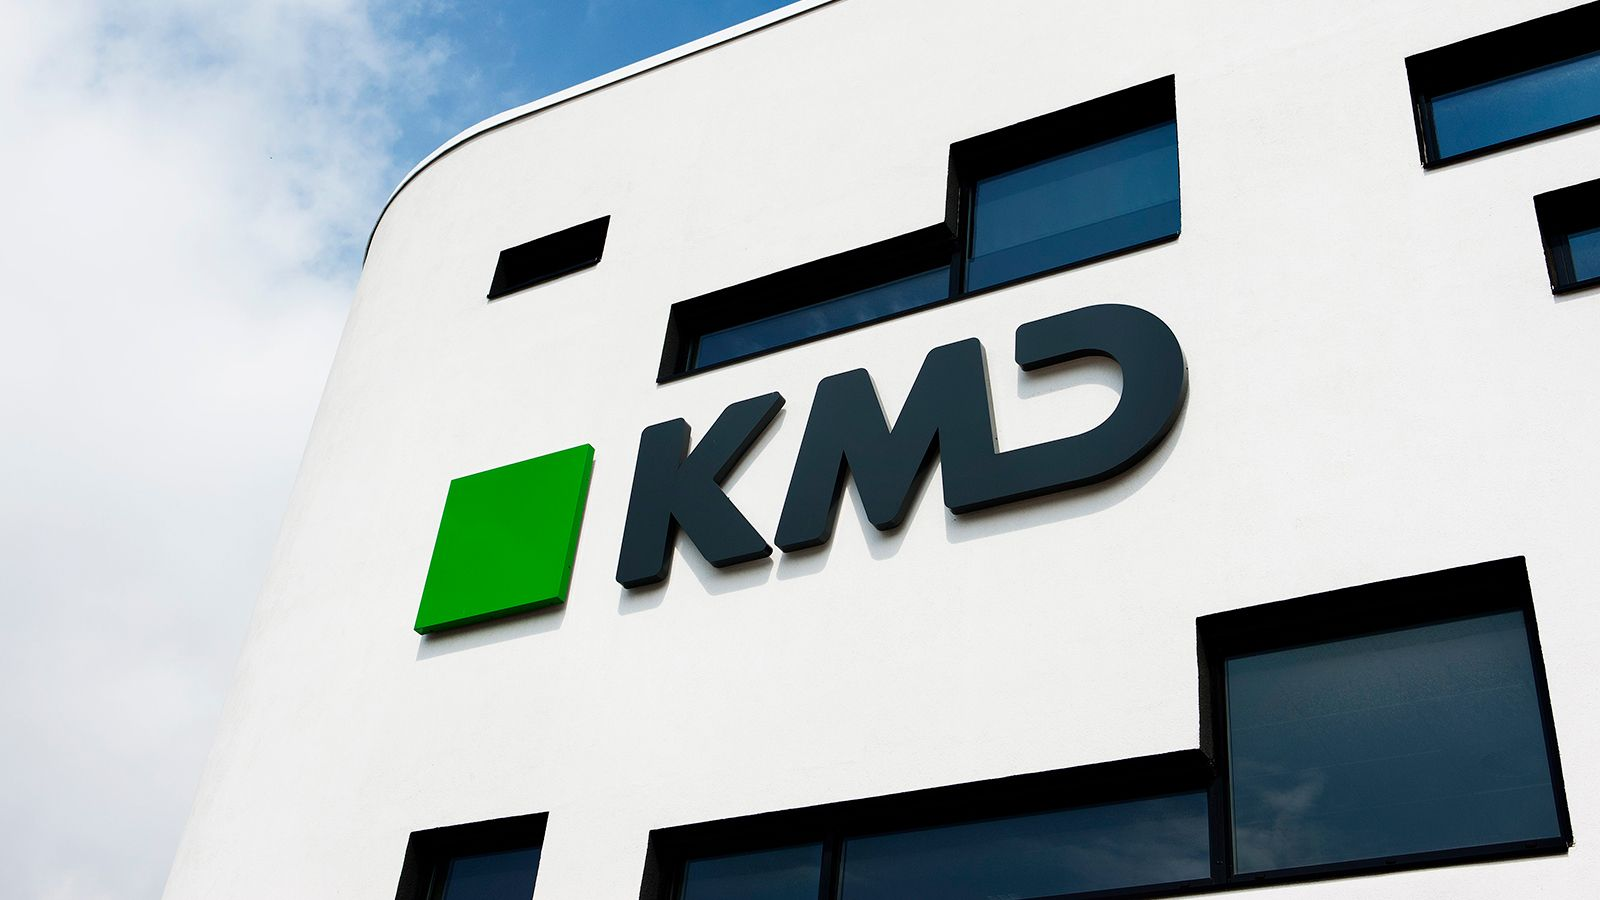 KMD logo on office building